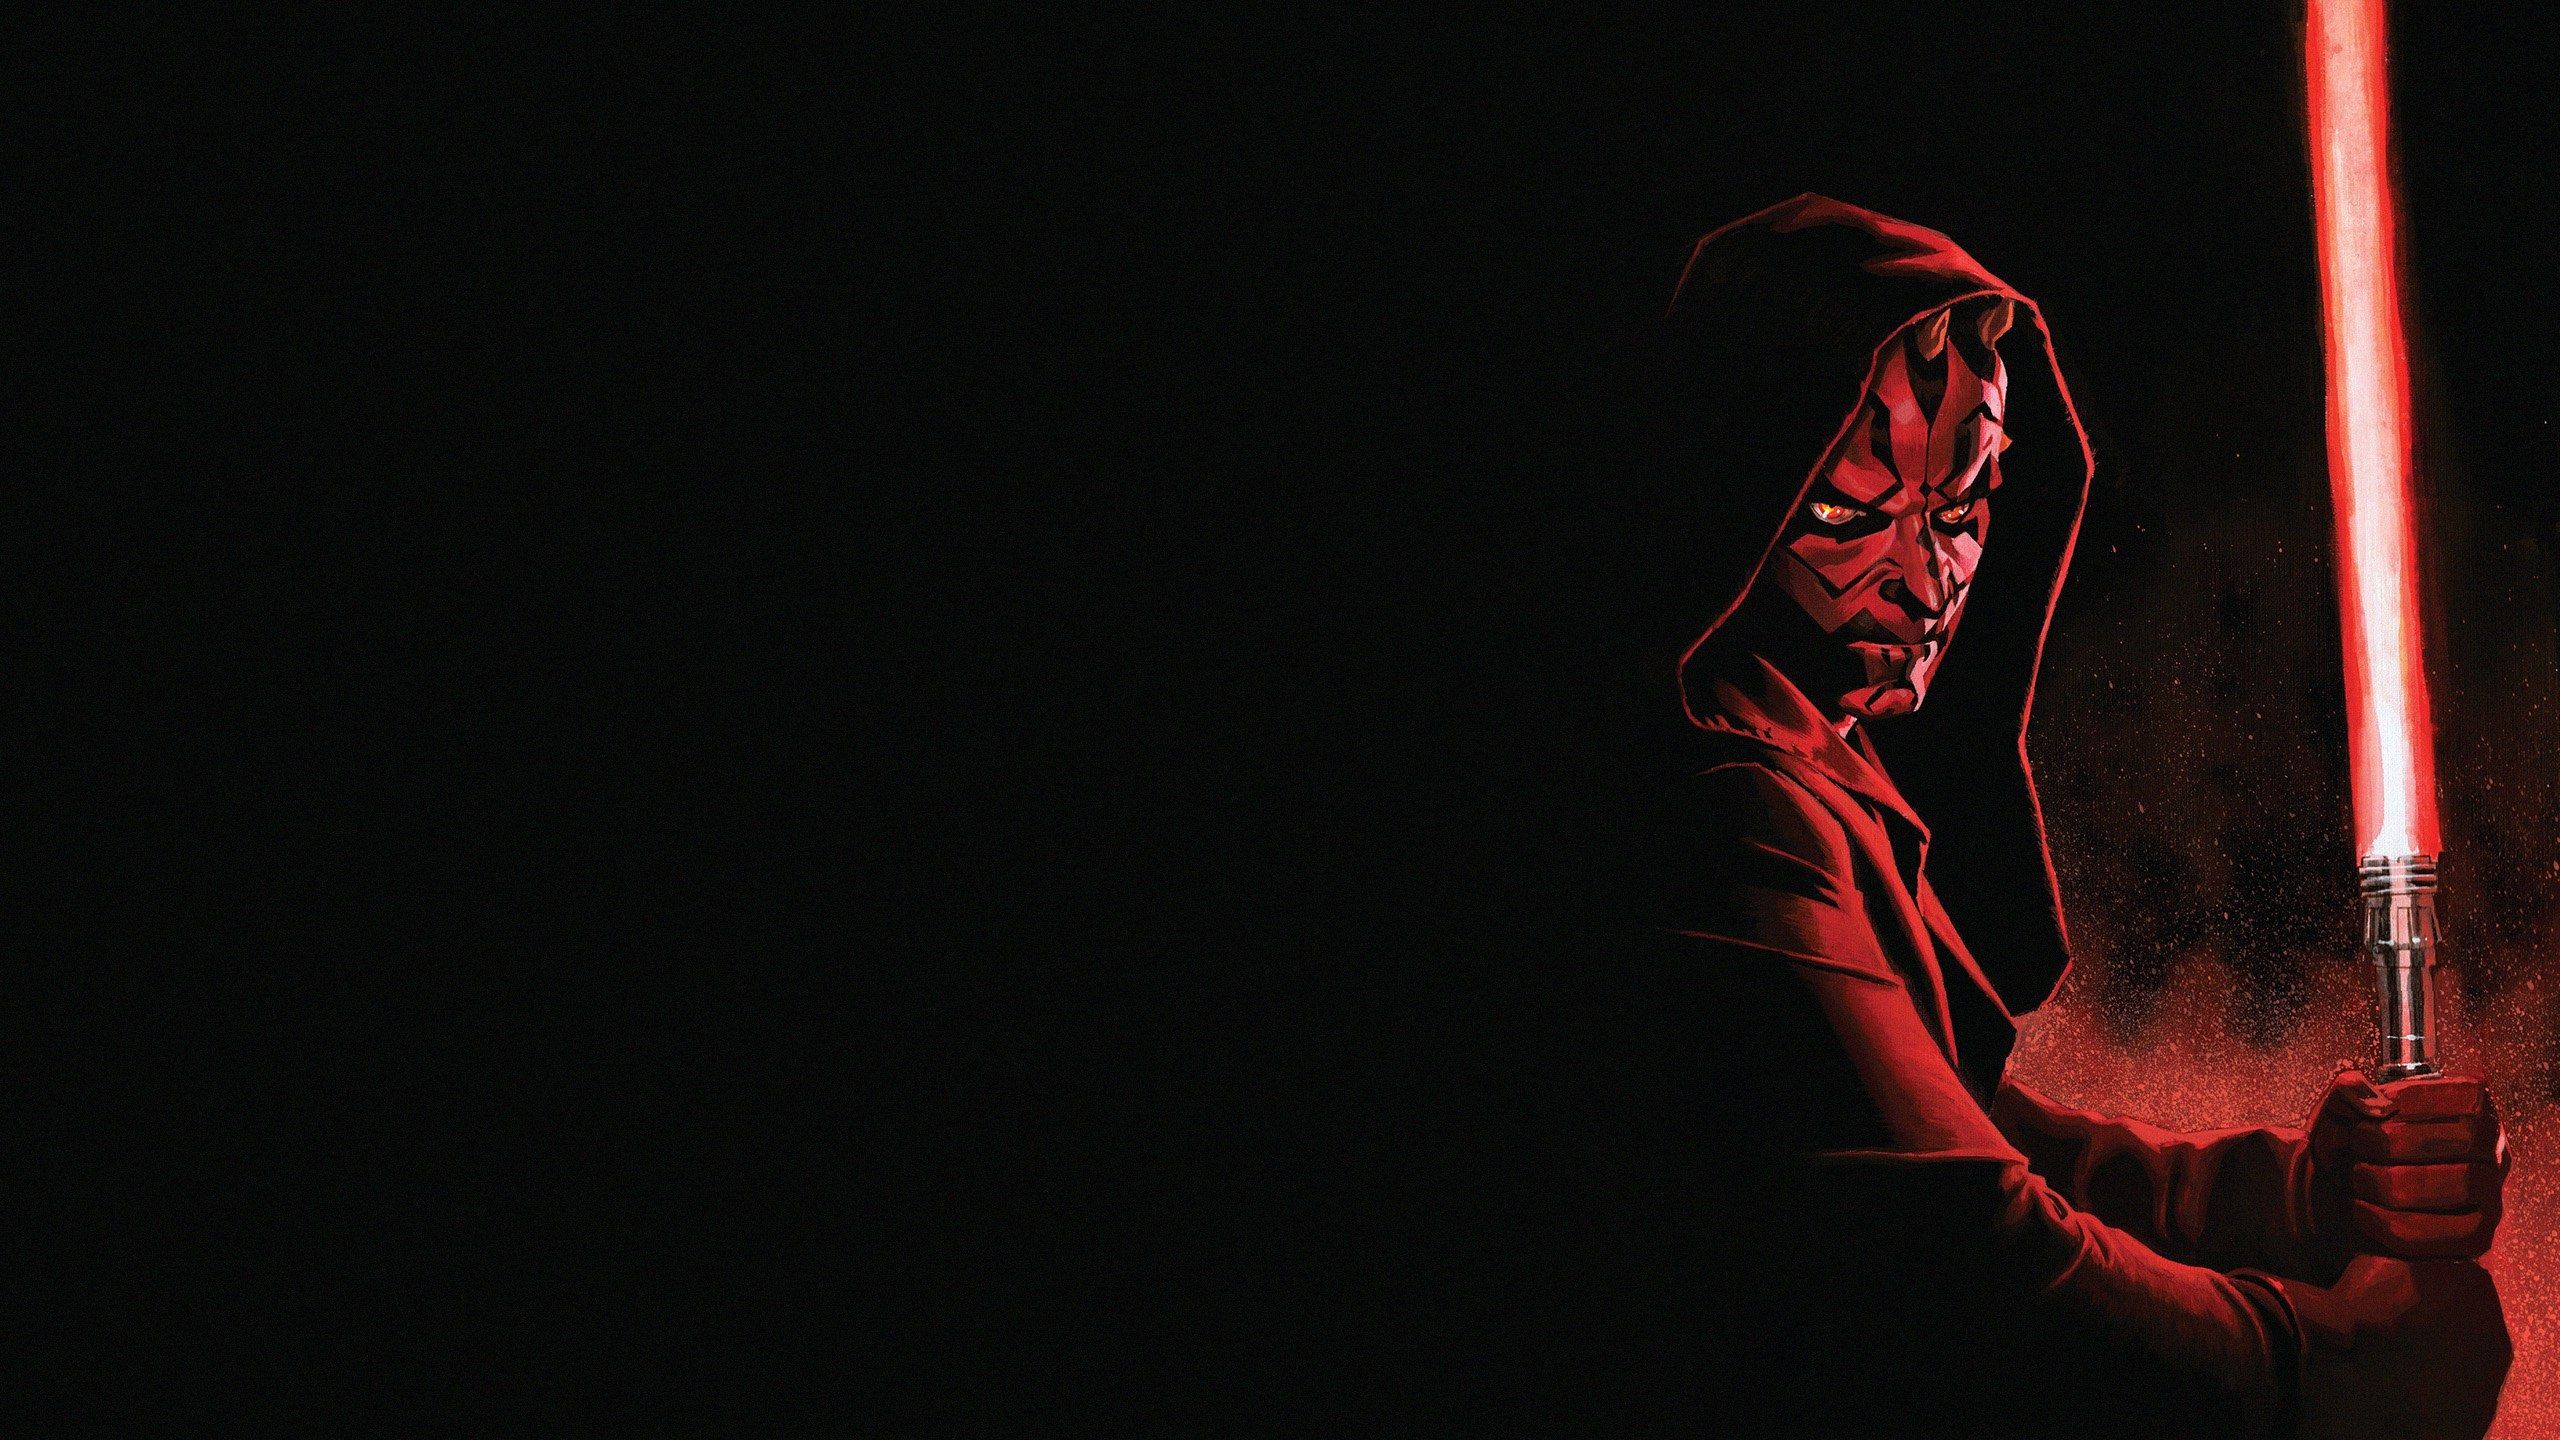 Wallpaper Star Wars Darth Maul Lightsaber Art Picture 2560x1440 Qhd Picture Image